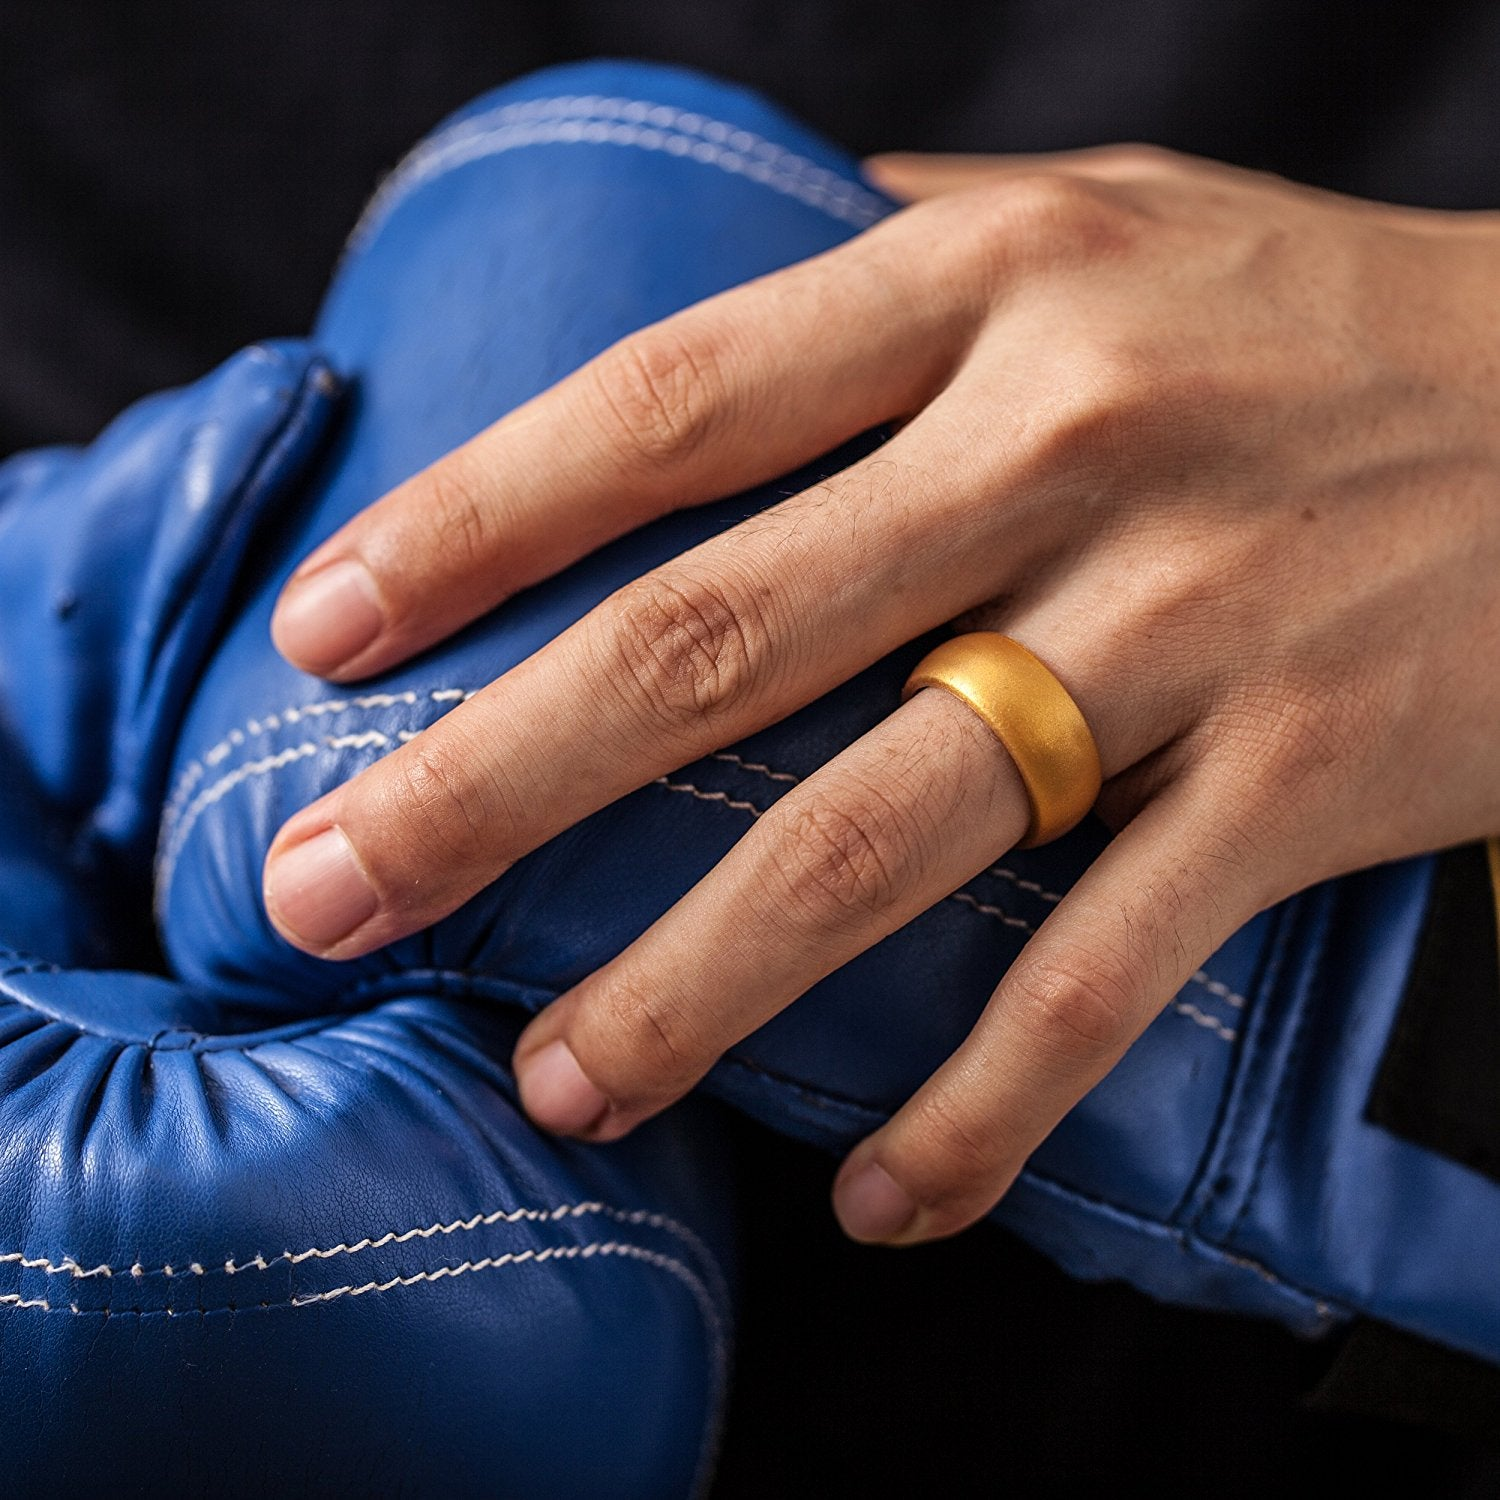 Men's Round Silicone Ring - Gold